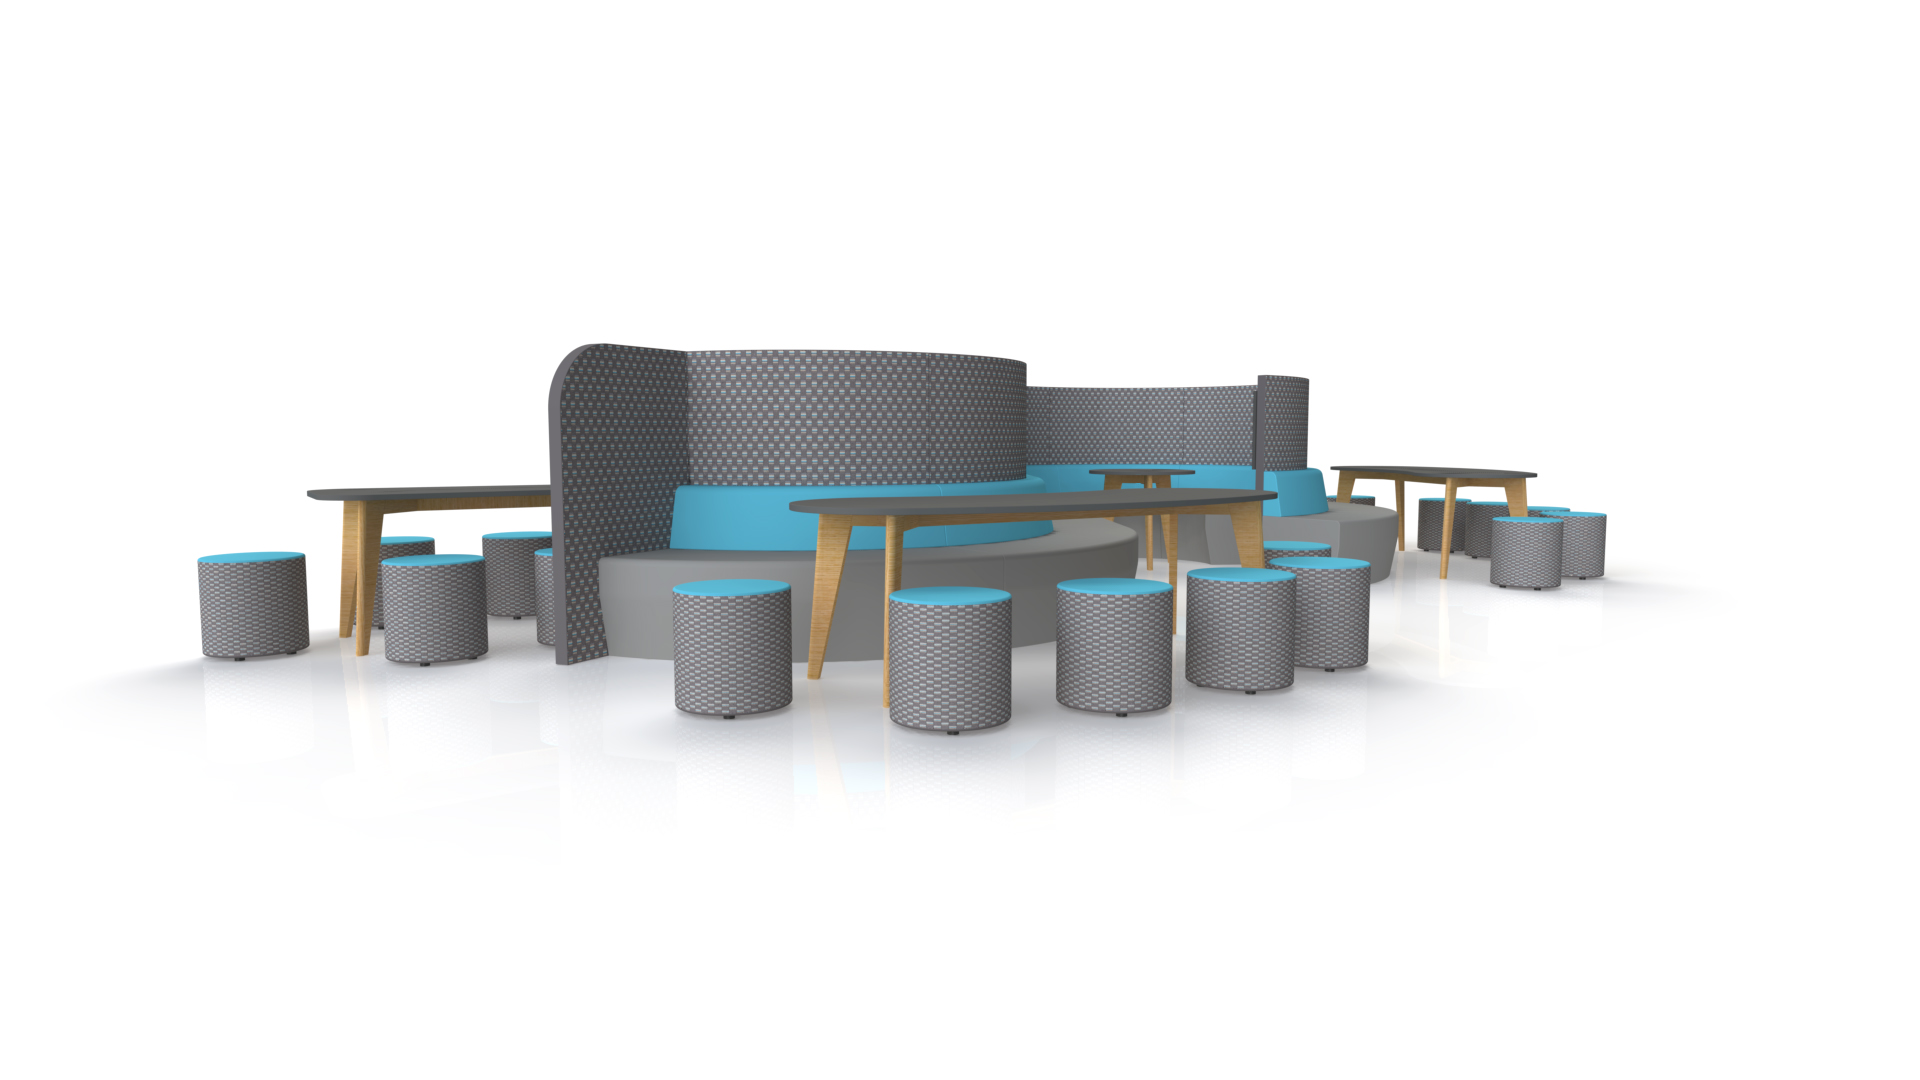 Curved Seating Meet Media v4